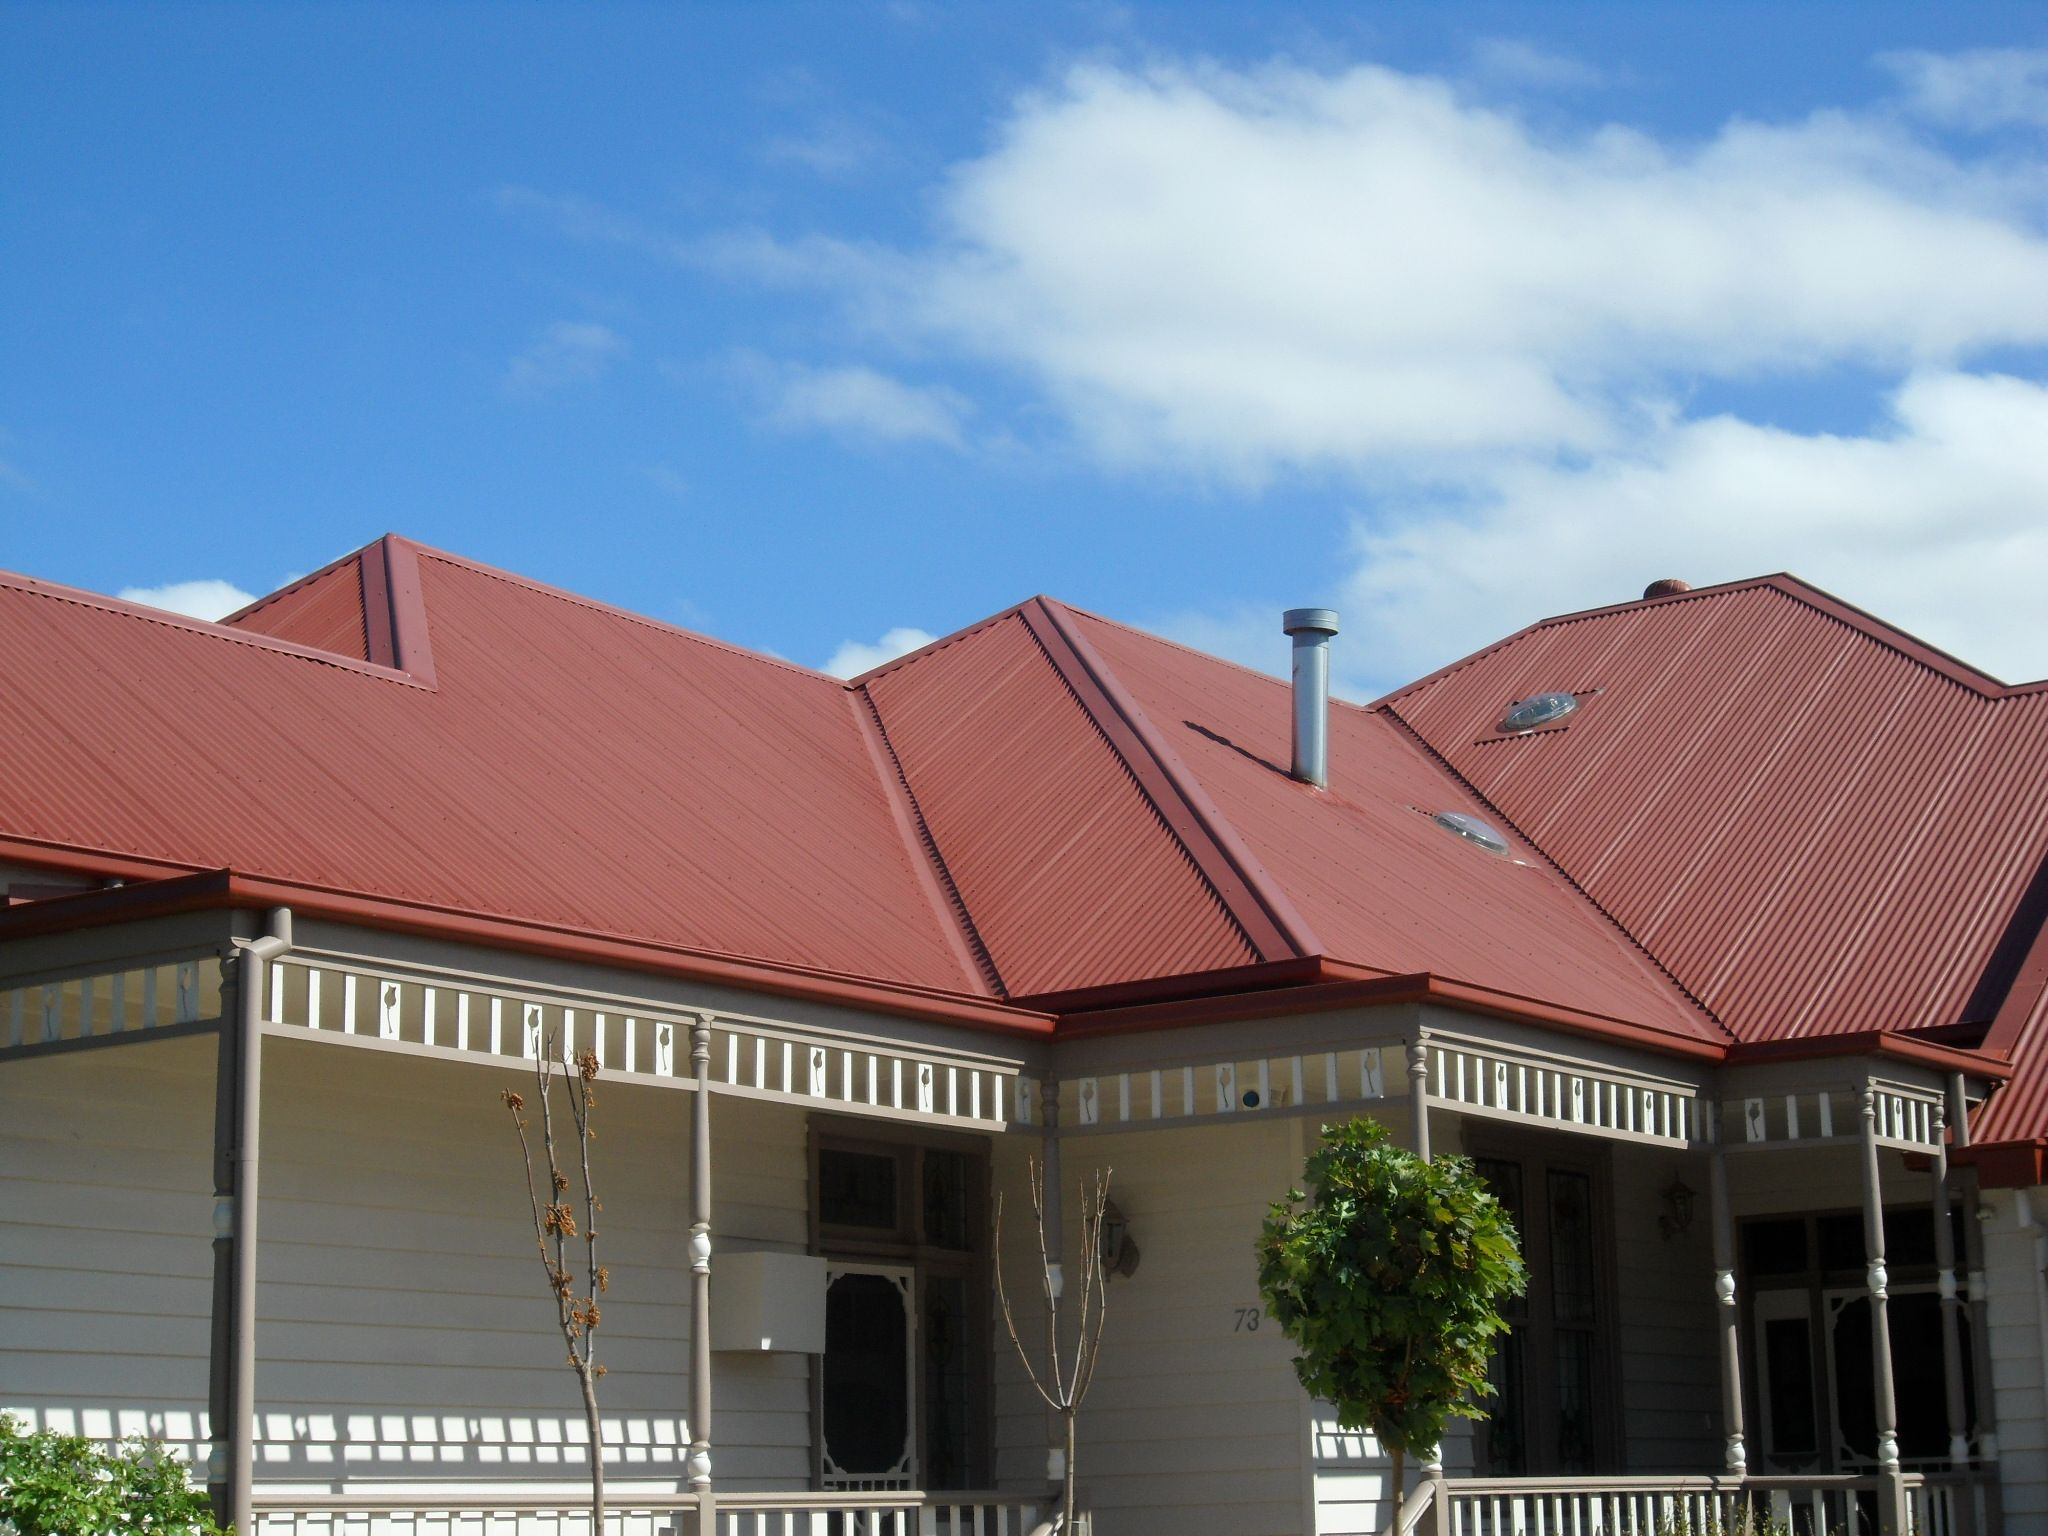 exterior color schemes with red roof. re roof brighton exterior color schemes with red a